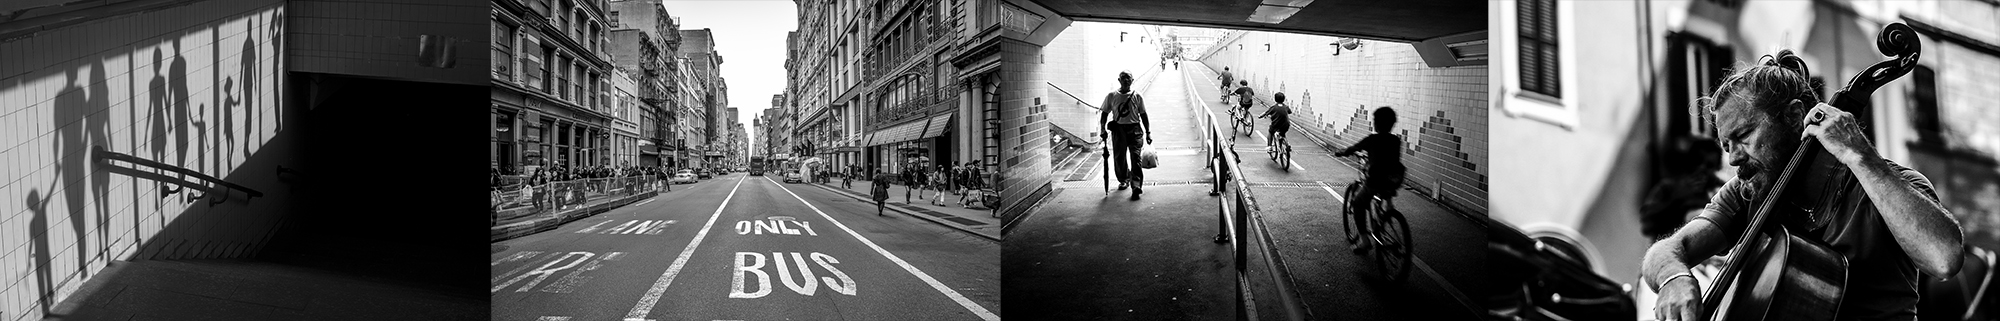 street photography portrait city people camera subject light how to tutorial guide